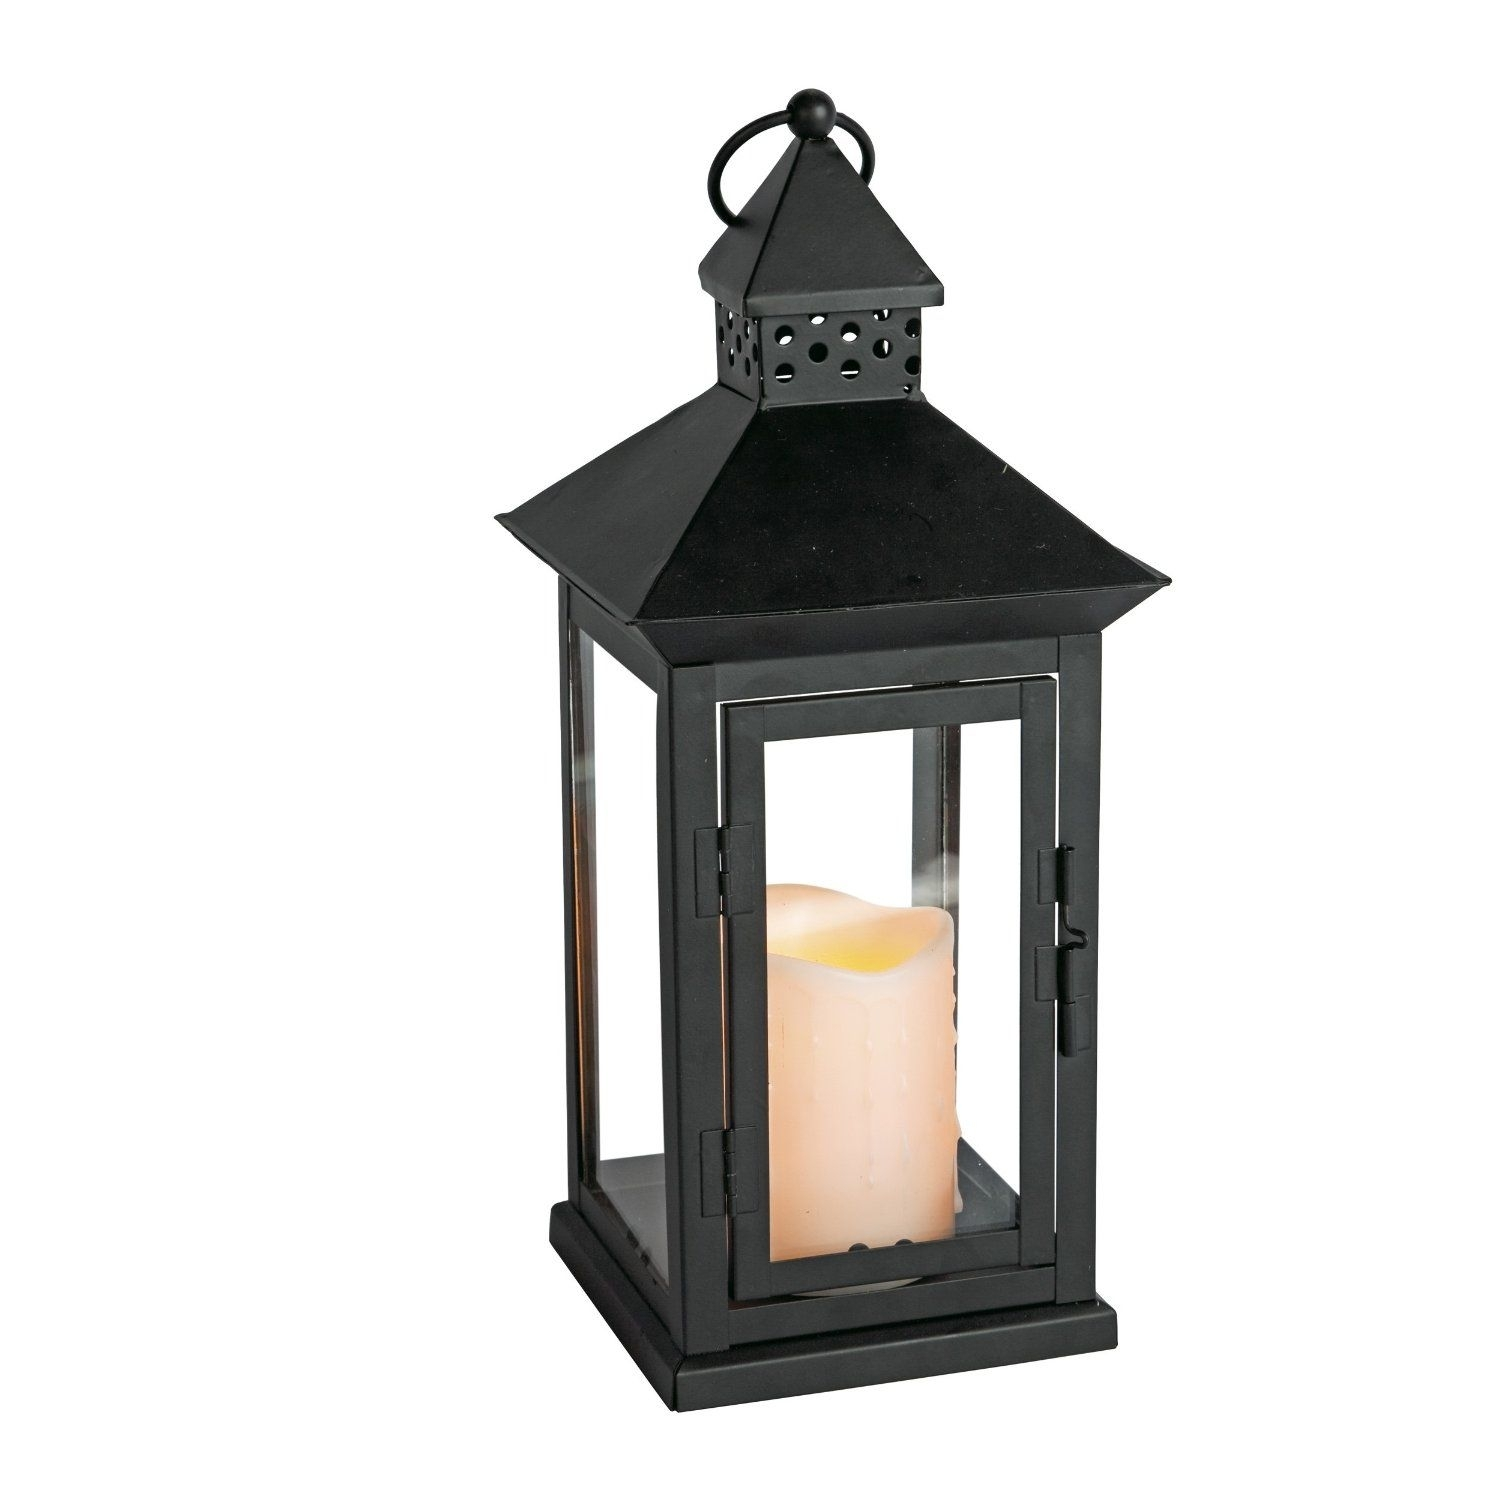 "Amazonsmile - Everlasting Glow Indoor/outdoor 6"" X 14"" Lantern And intended for Outdoor Lanterns With Led Candles (Image 2 of 20)"